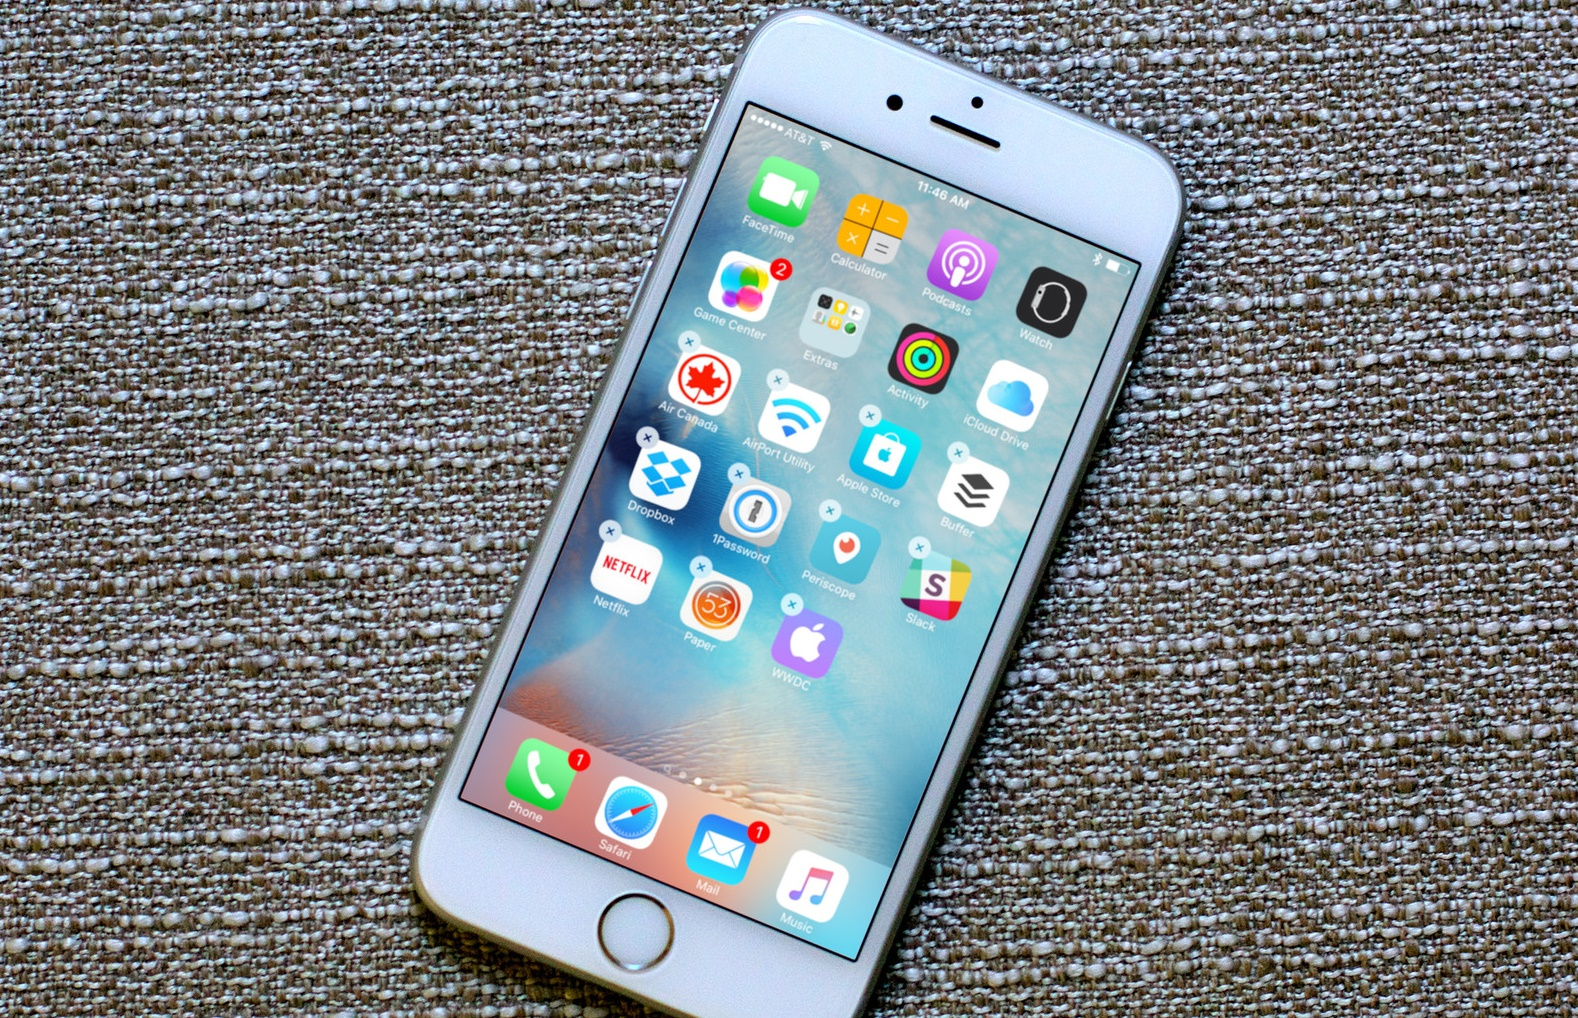 How to move or delete apps with 3D Touch on iPhone 6S